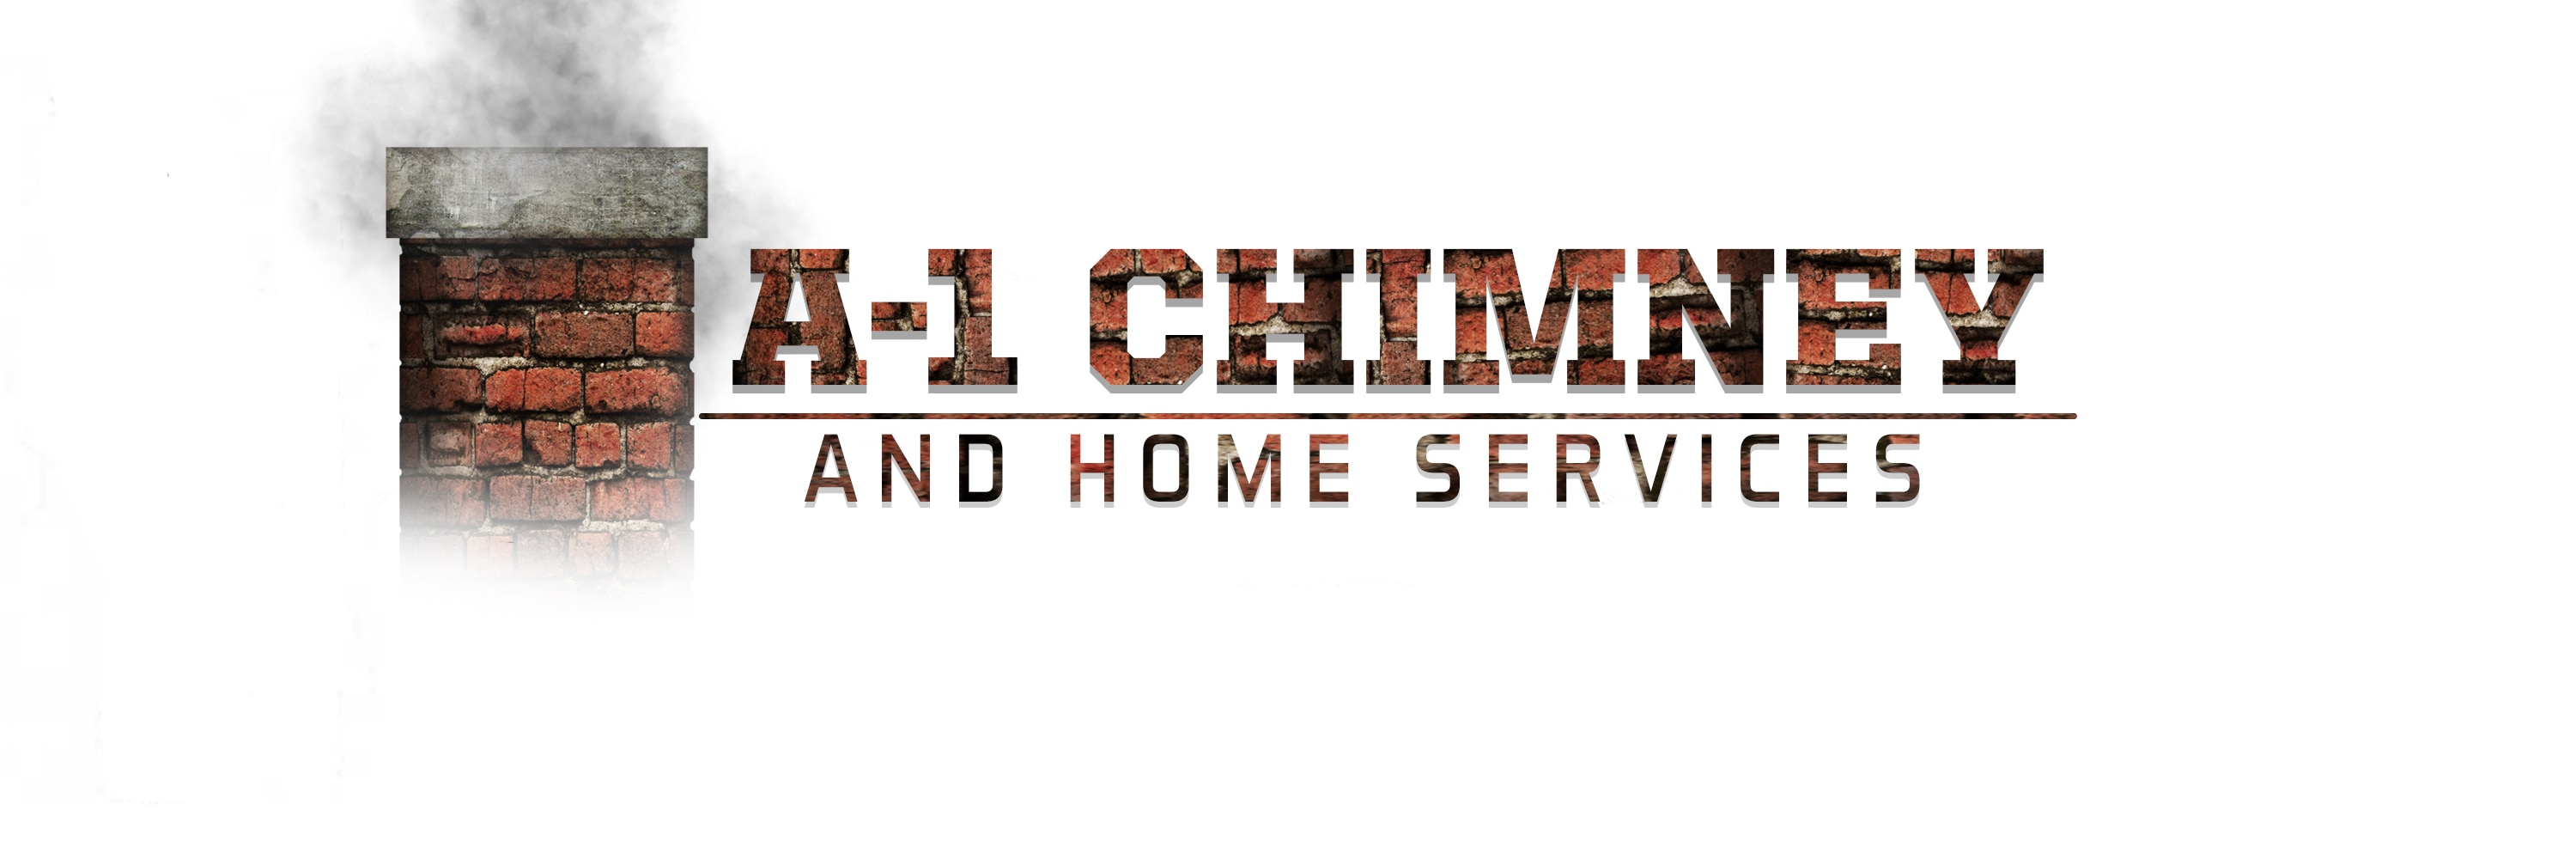 A-1 PROFESSIONAL HOME SERVICES by A-1 Chimney Inc. logo